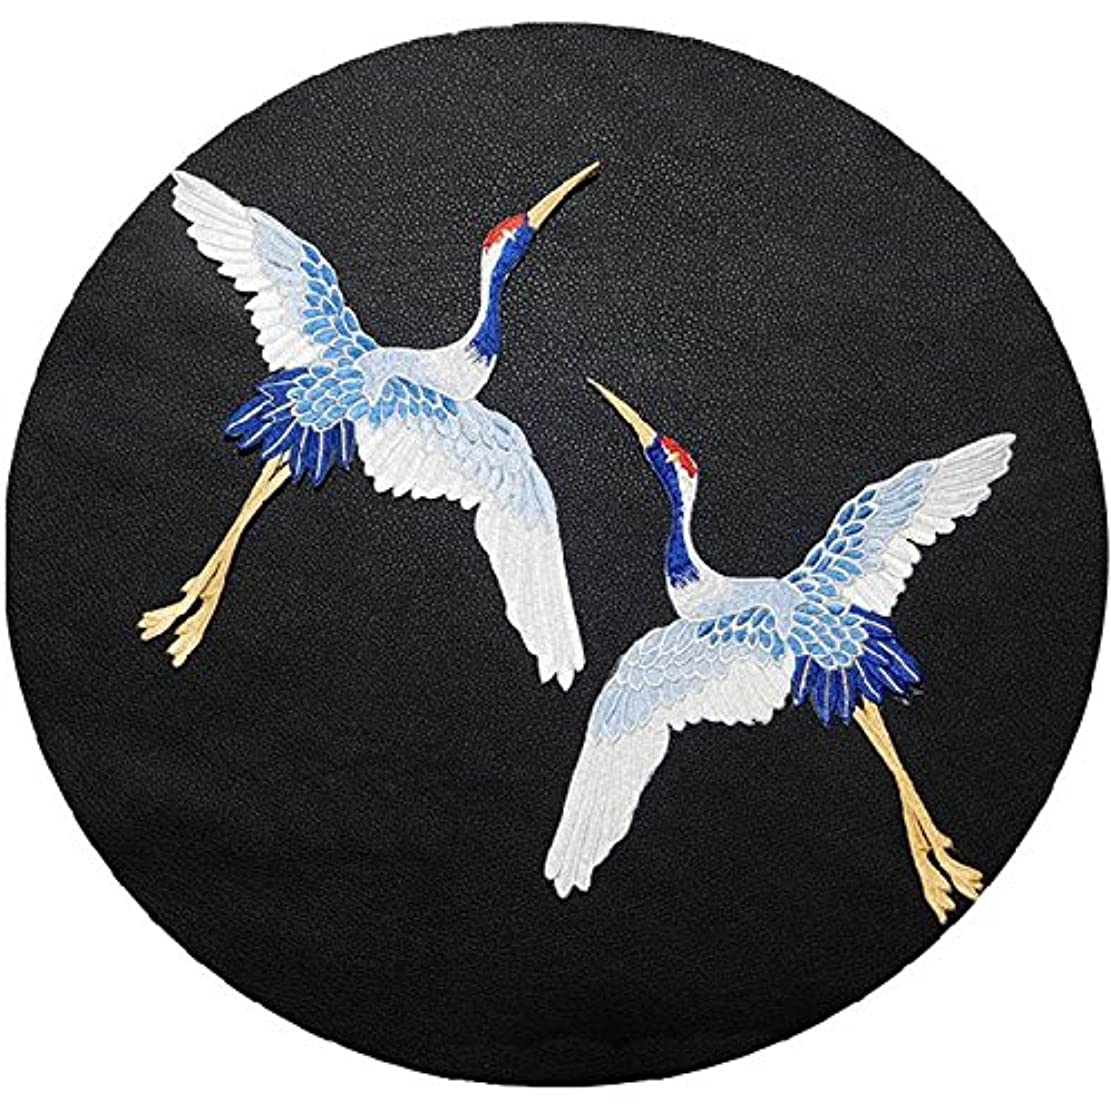 FJTANG Big Crane Sew On Patches for Clothing Applique Embroidery DIY Accessory Suppliers Stickers (Blue, Without Glue)